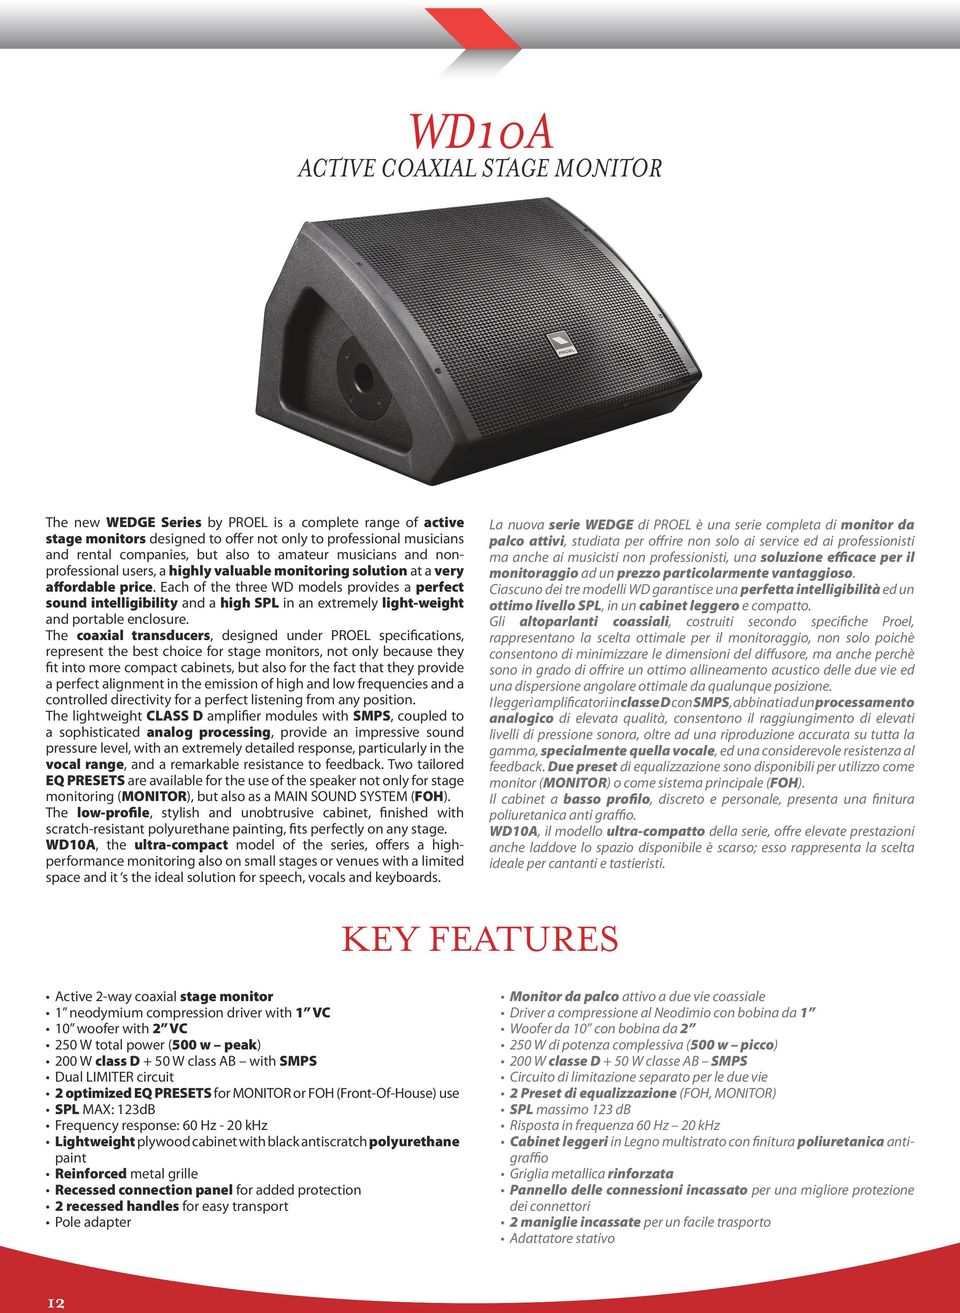 Each of the three WD models provides a perfect sound intelligibility and a high SPL in an extremely light-weight and portable enclosure.